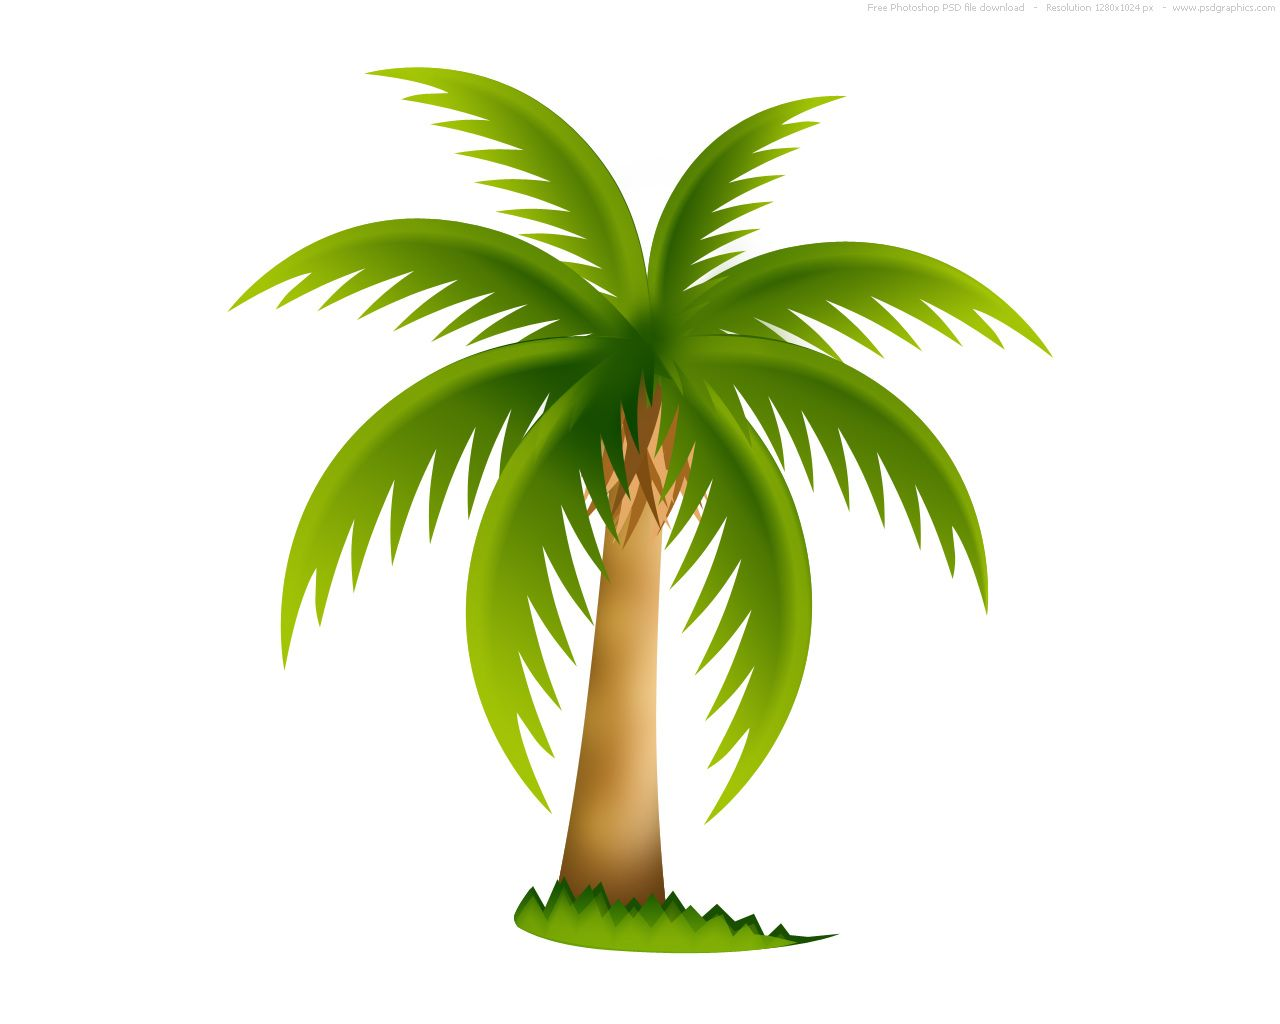 hight resolution of tree clipart palm tree image vector clip art online royalty free public domain